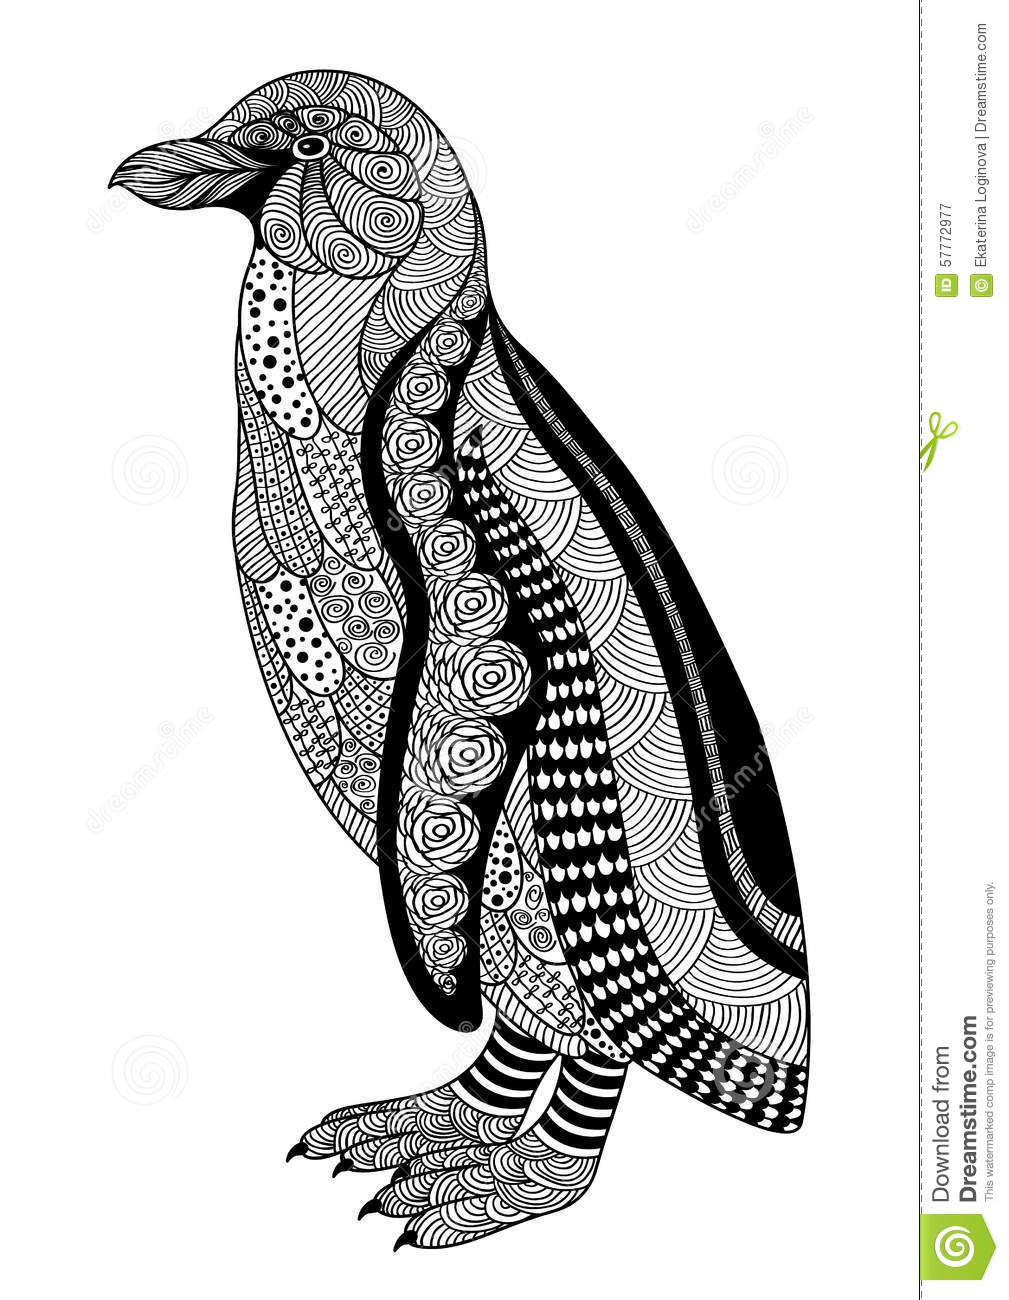 Zentangle Style Black And White Ornamental Penguin On A